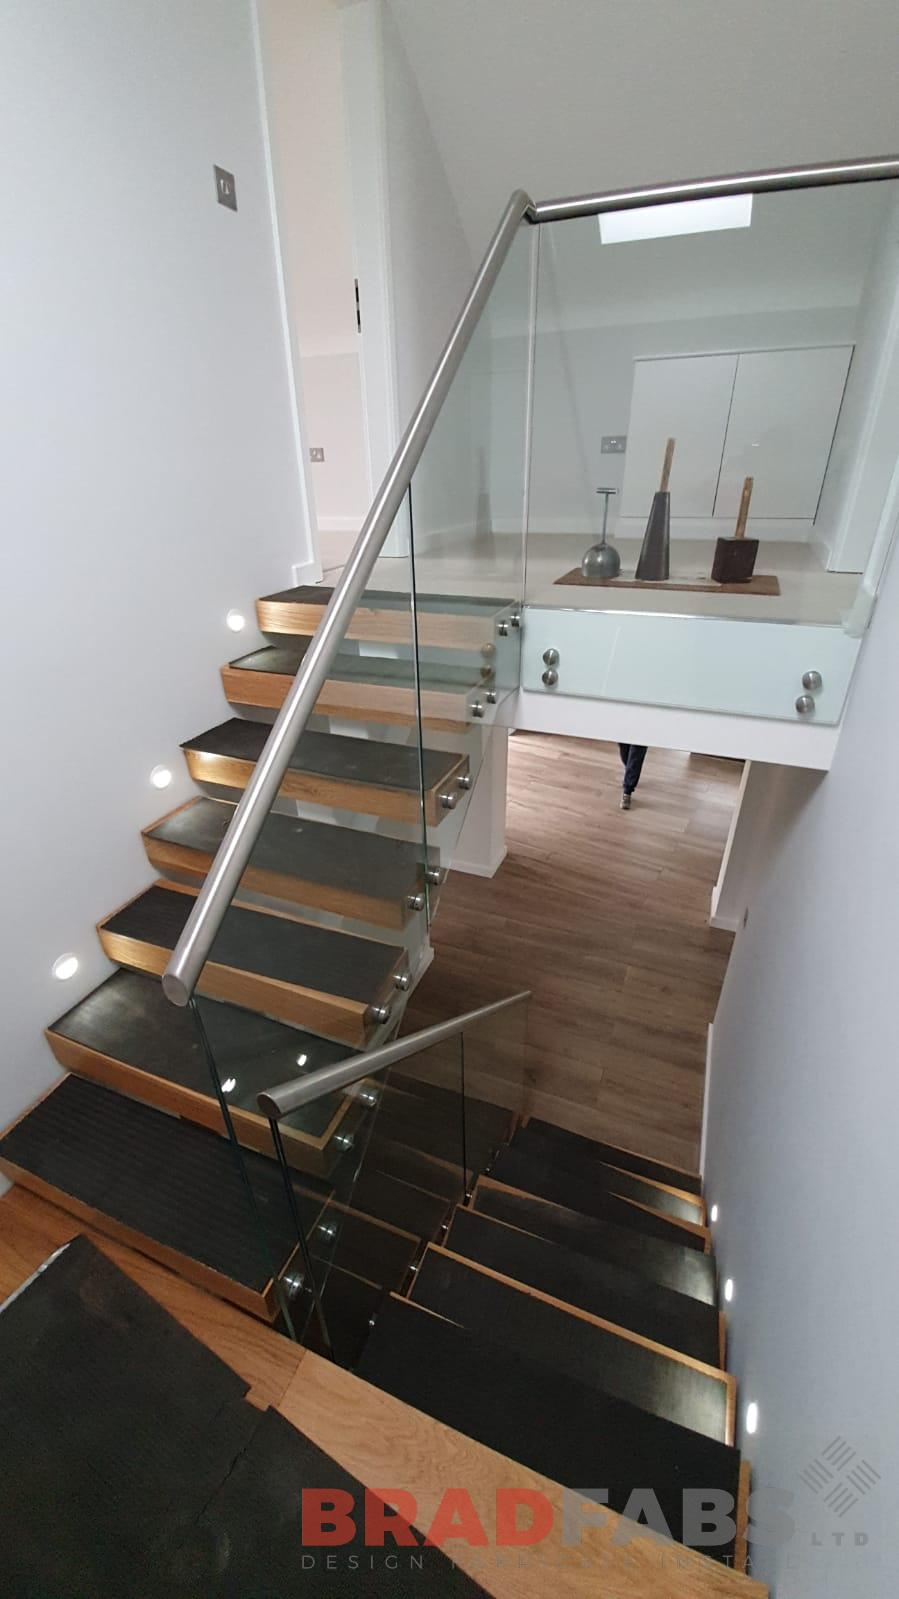 single spine straight staircase for a domestic property, with stainless steel top rail and infinity glass balustrade, complete with oak treads by Bradfabs